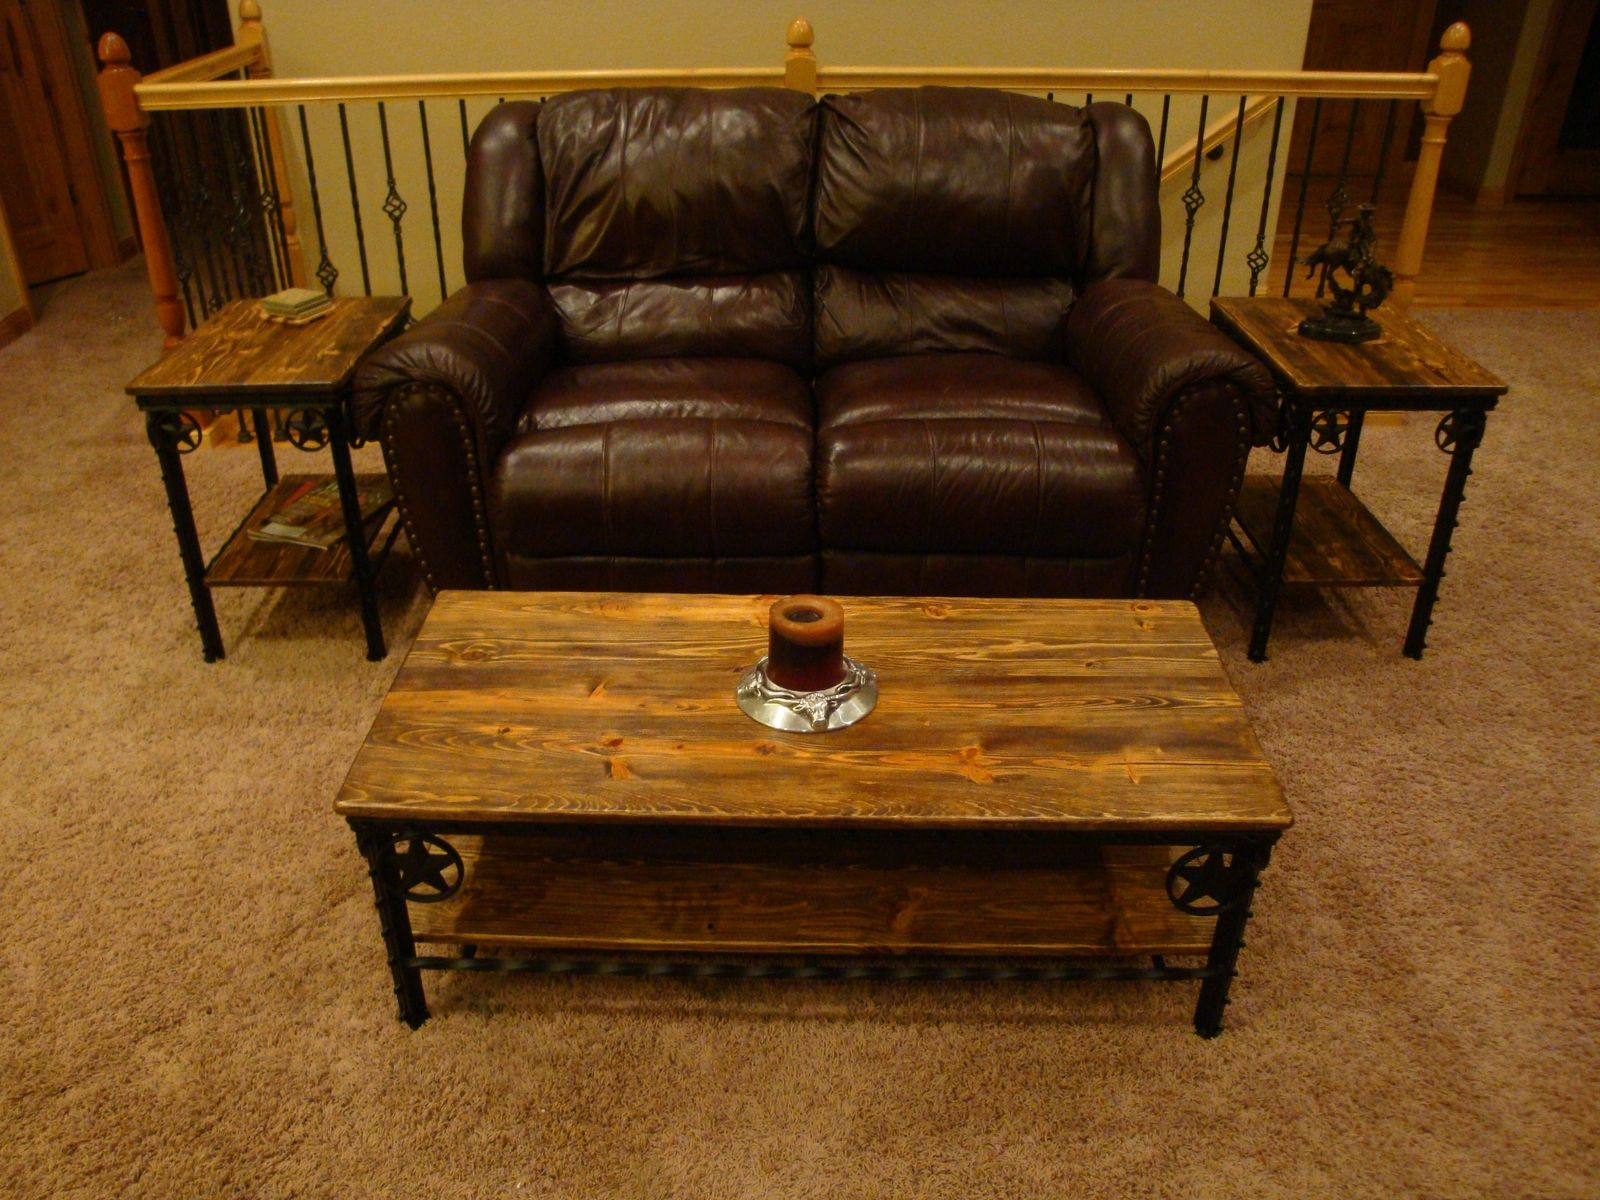 Handmade Western Coffee Table And End Tables by Willow Creek Decor